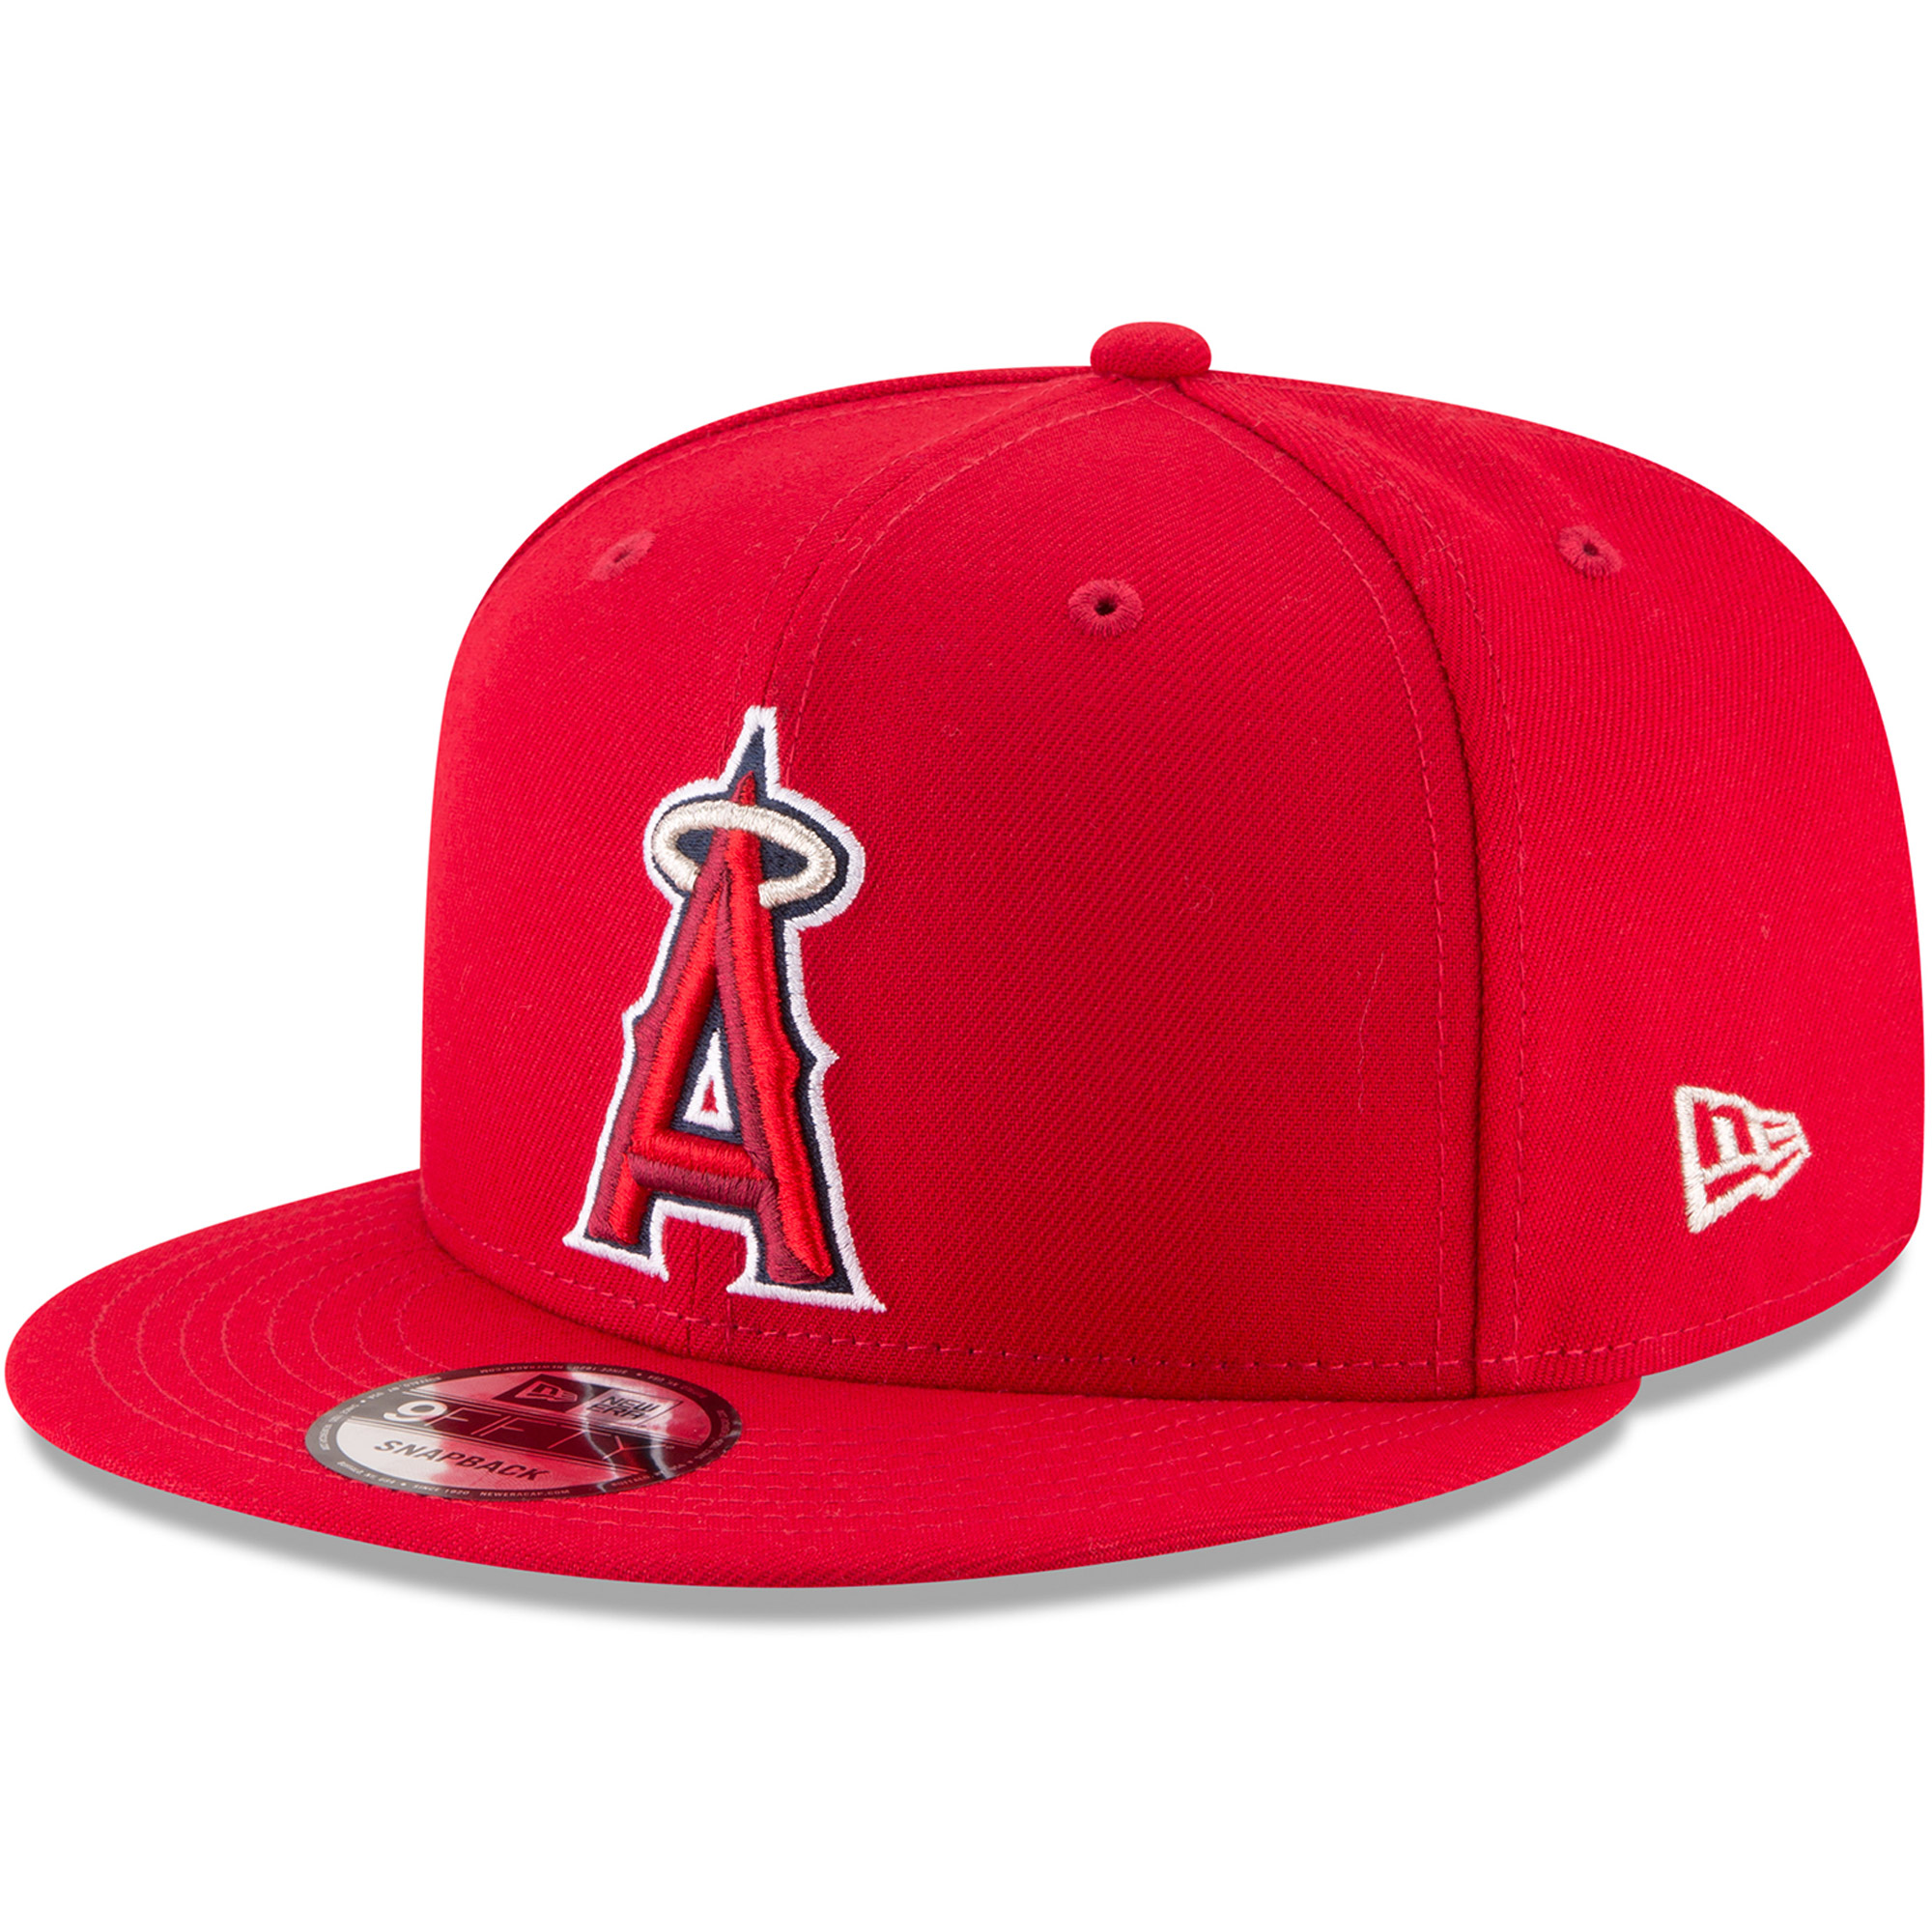 Los Angeles Angels New Era Team Color 9FIFTY Adjustable Hat - Red - OSFA